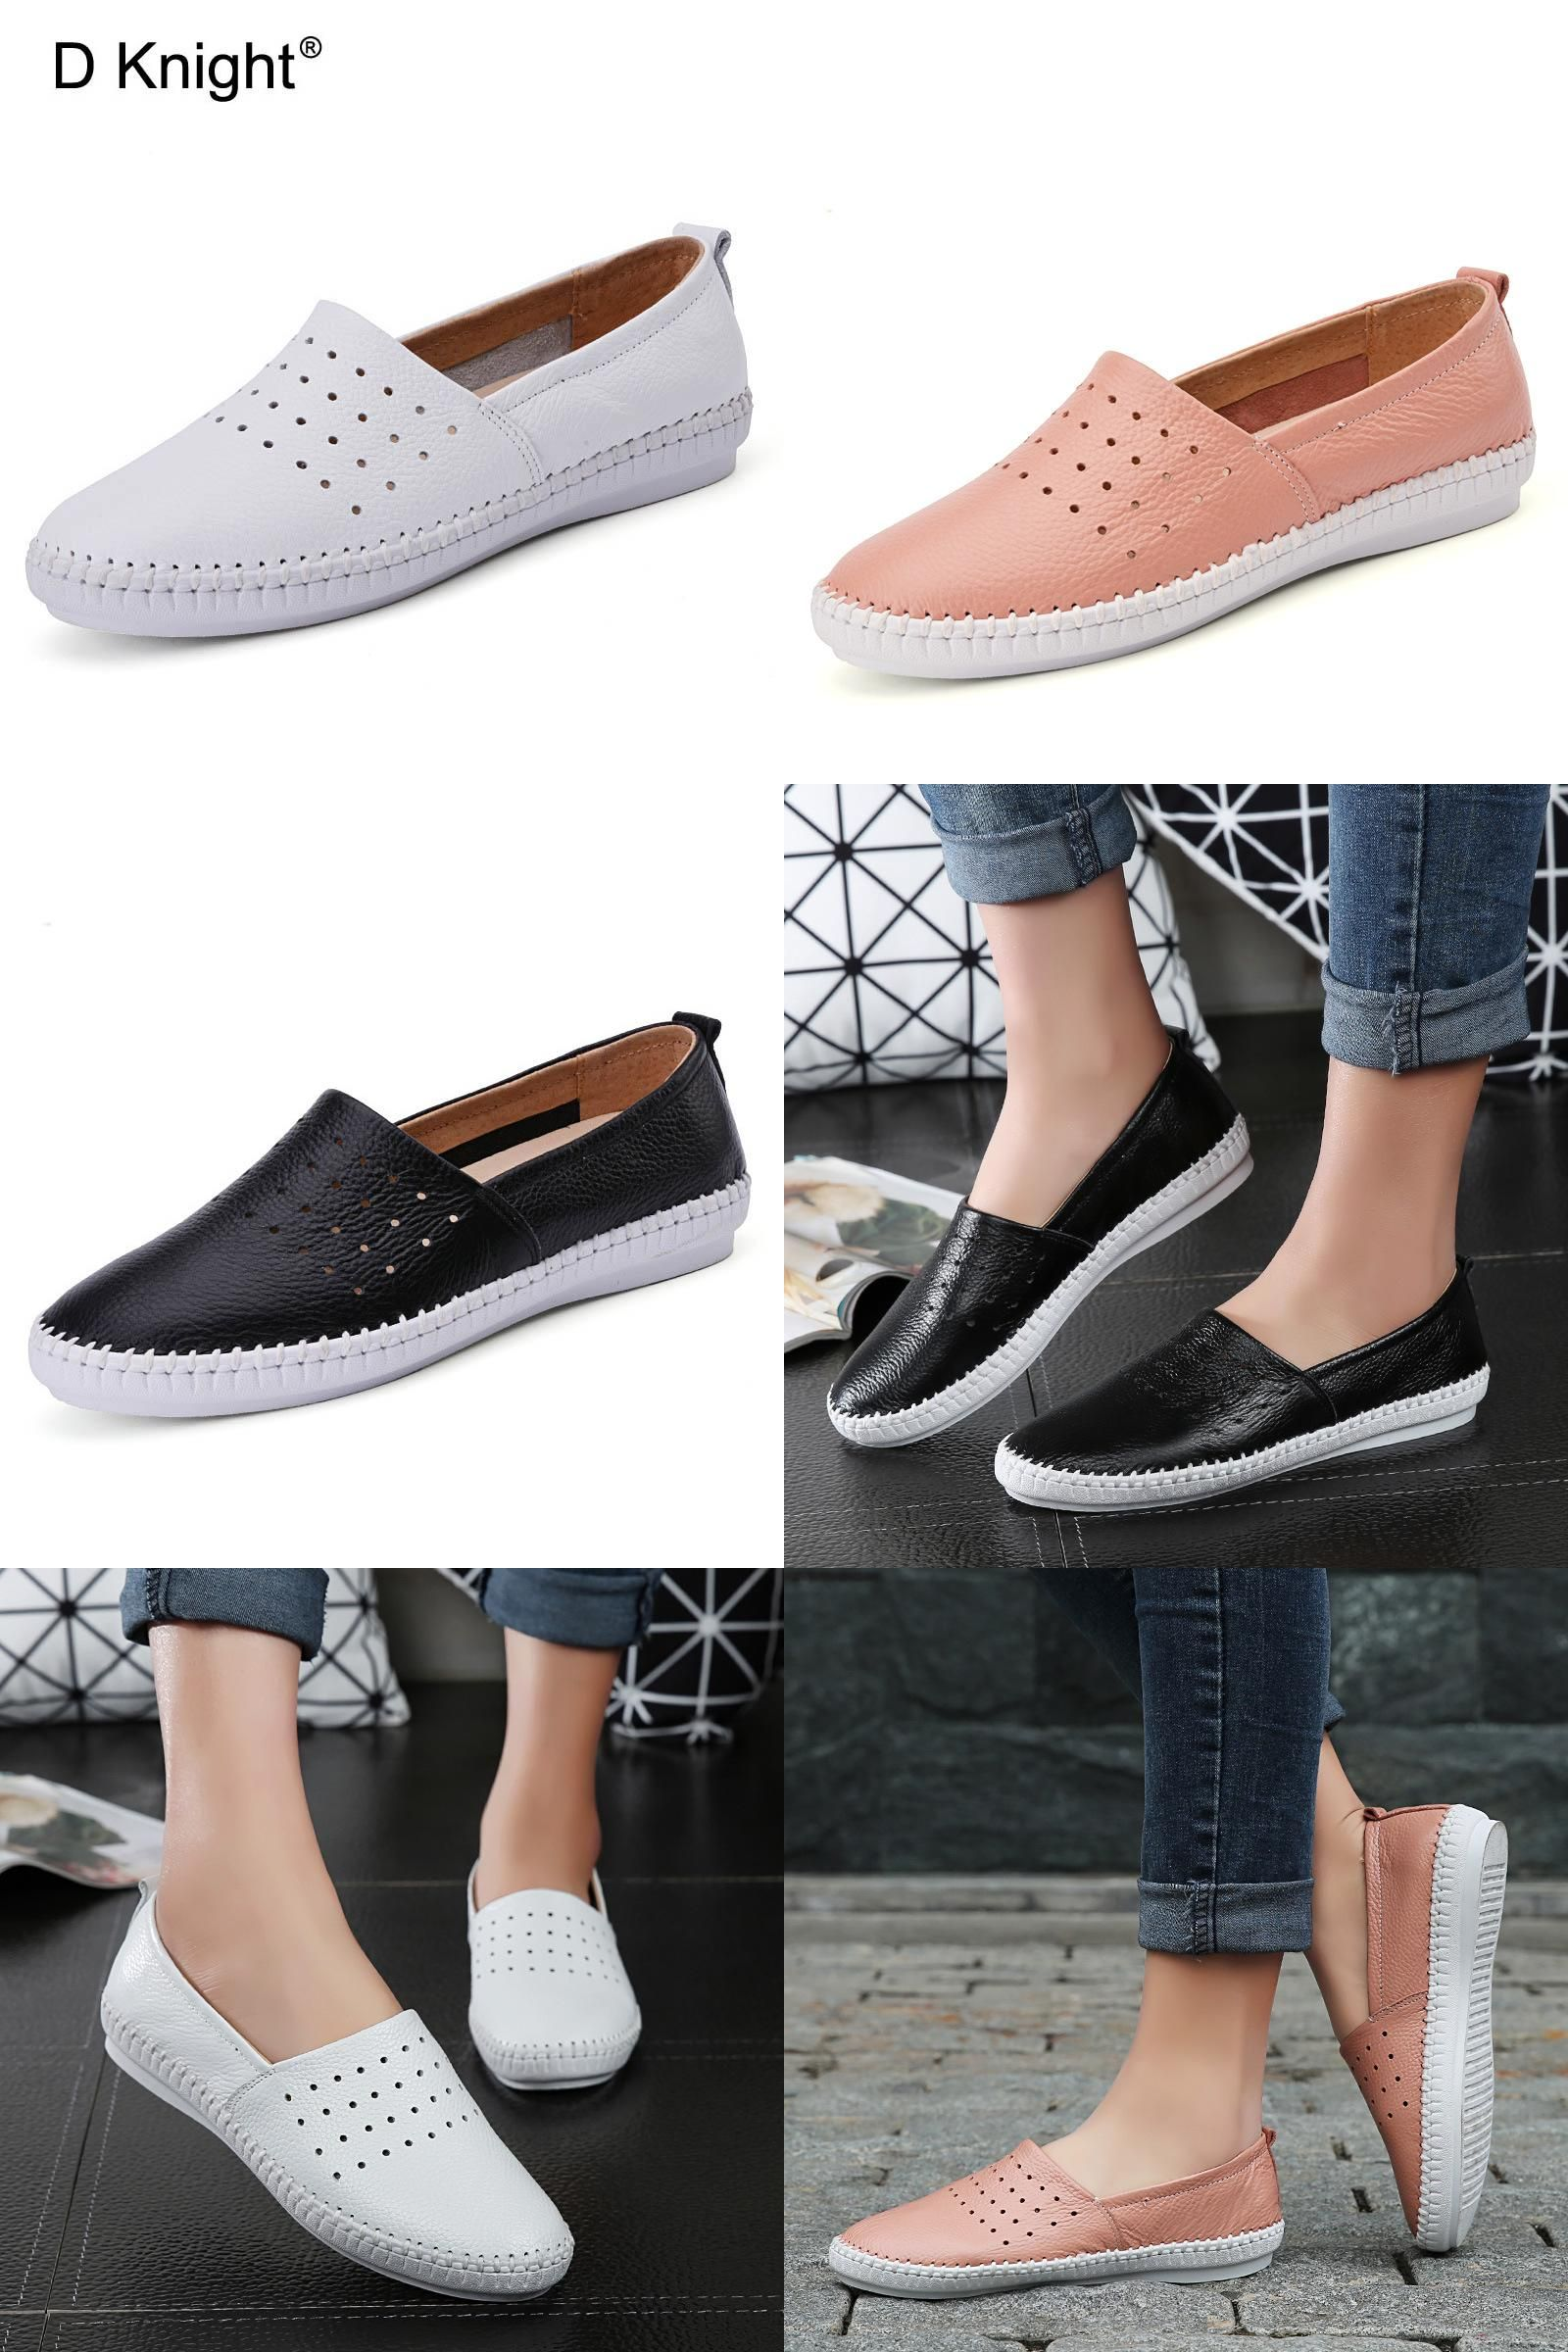 Visit To Buy Ladies Genuine Leather Casual Flat Shoes Woman Spring Summer Loafers Slip On Flats Breatha Flat Shoes Women Women Shoes Casual Shoes Women Flats [ 2400 x 1600 Pixel ]